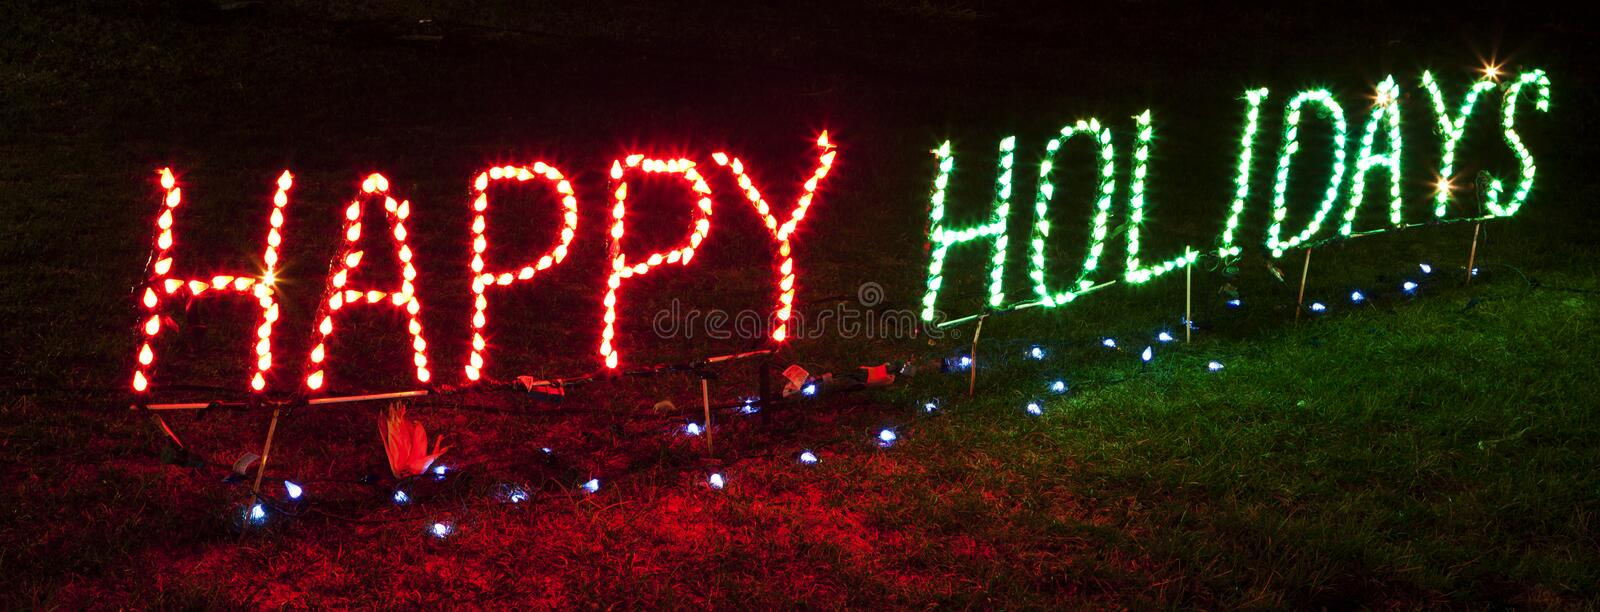 Download Brightly Lit Happy Holidays Sign Stock Image - Image: 17220495